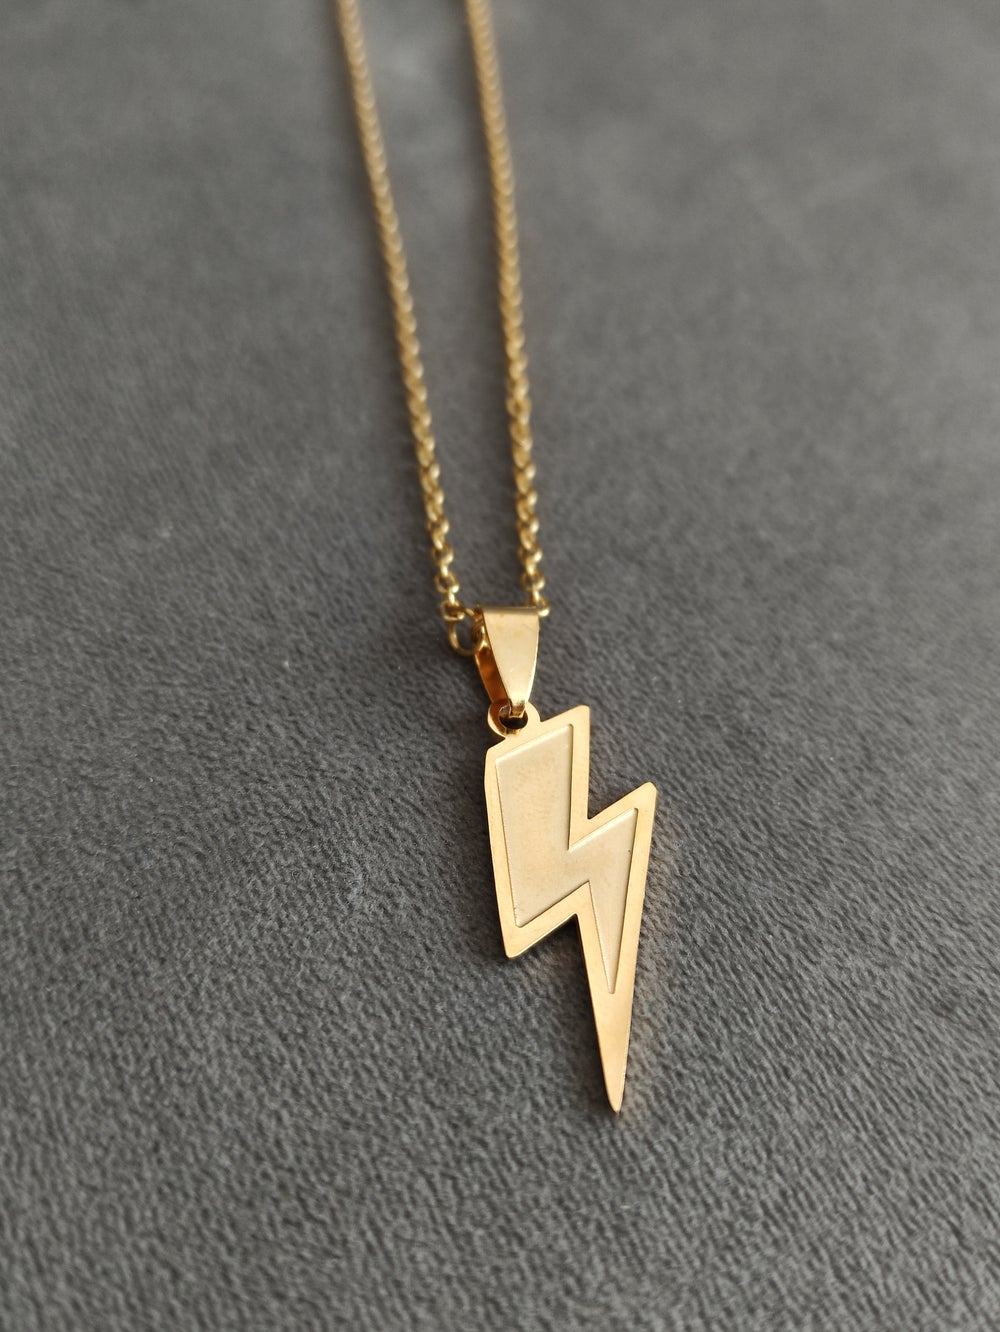 Gold Lightning Bolt Pendant and Chain (Stainless Steel)